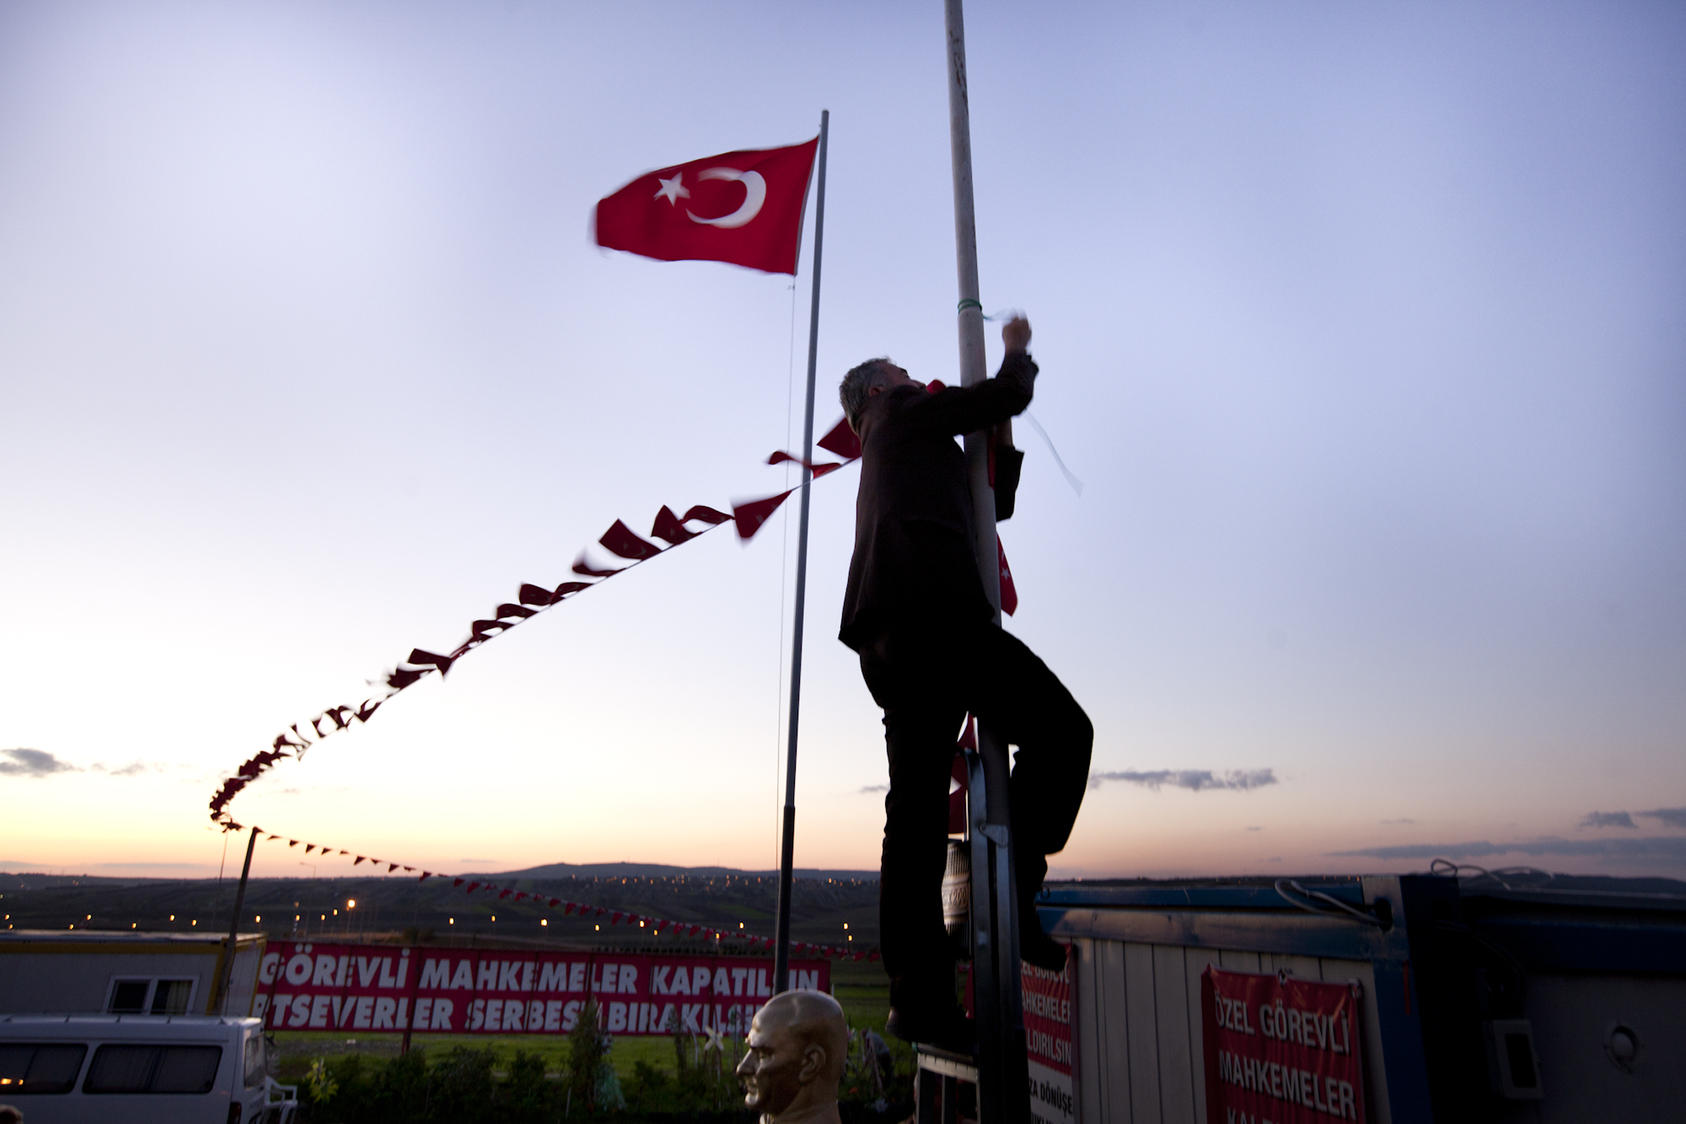 A man ties flags around a pole at a protest camp outside a prison and courthouse in Silivri, Turkey, Nov. 8, 2012. Secular protesters have set up a camp to protest the trial of hundreds of military officers charged with plotting to overthrow the Islamic-rooted government.